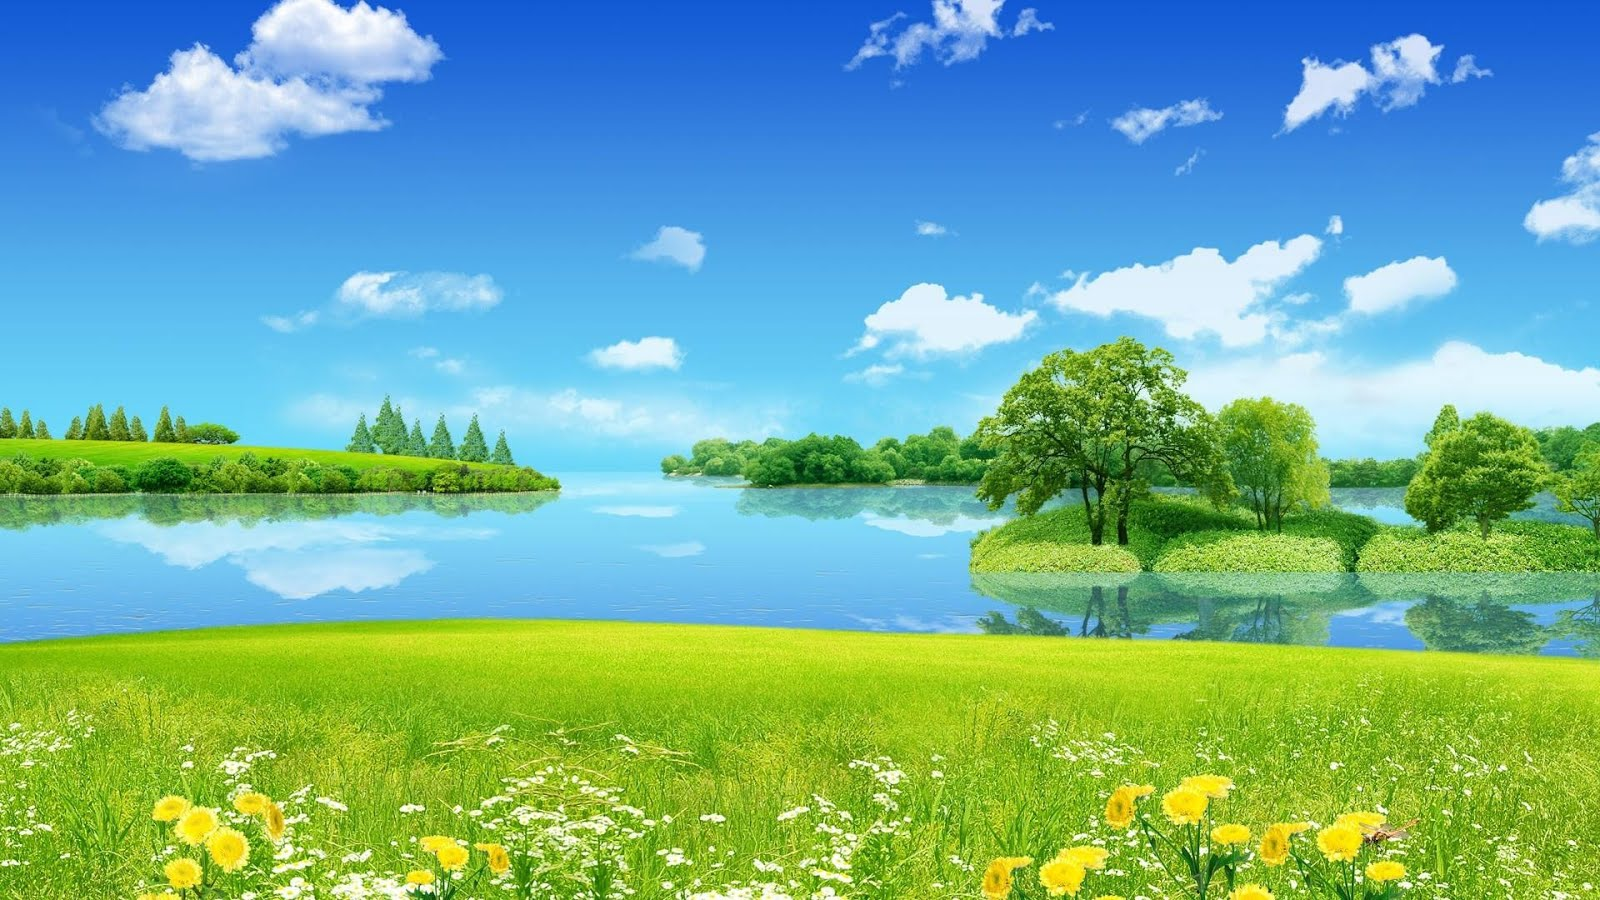 Animated Nature Wallpaper - FAW